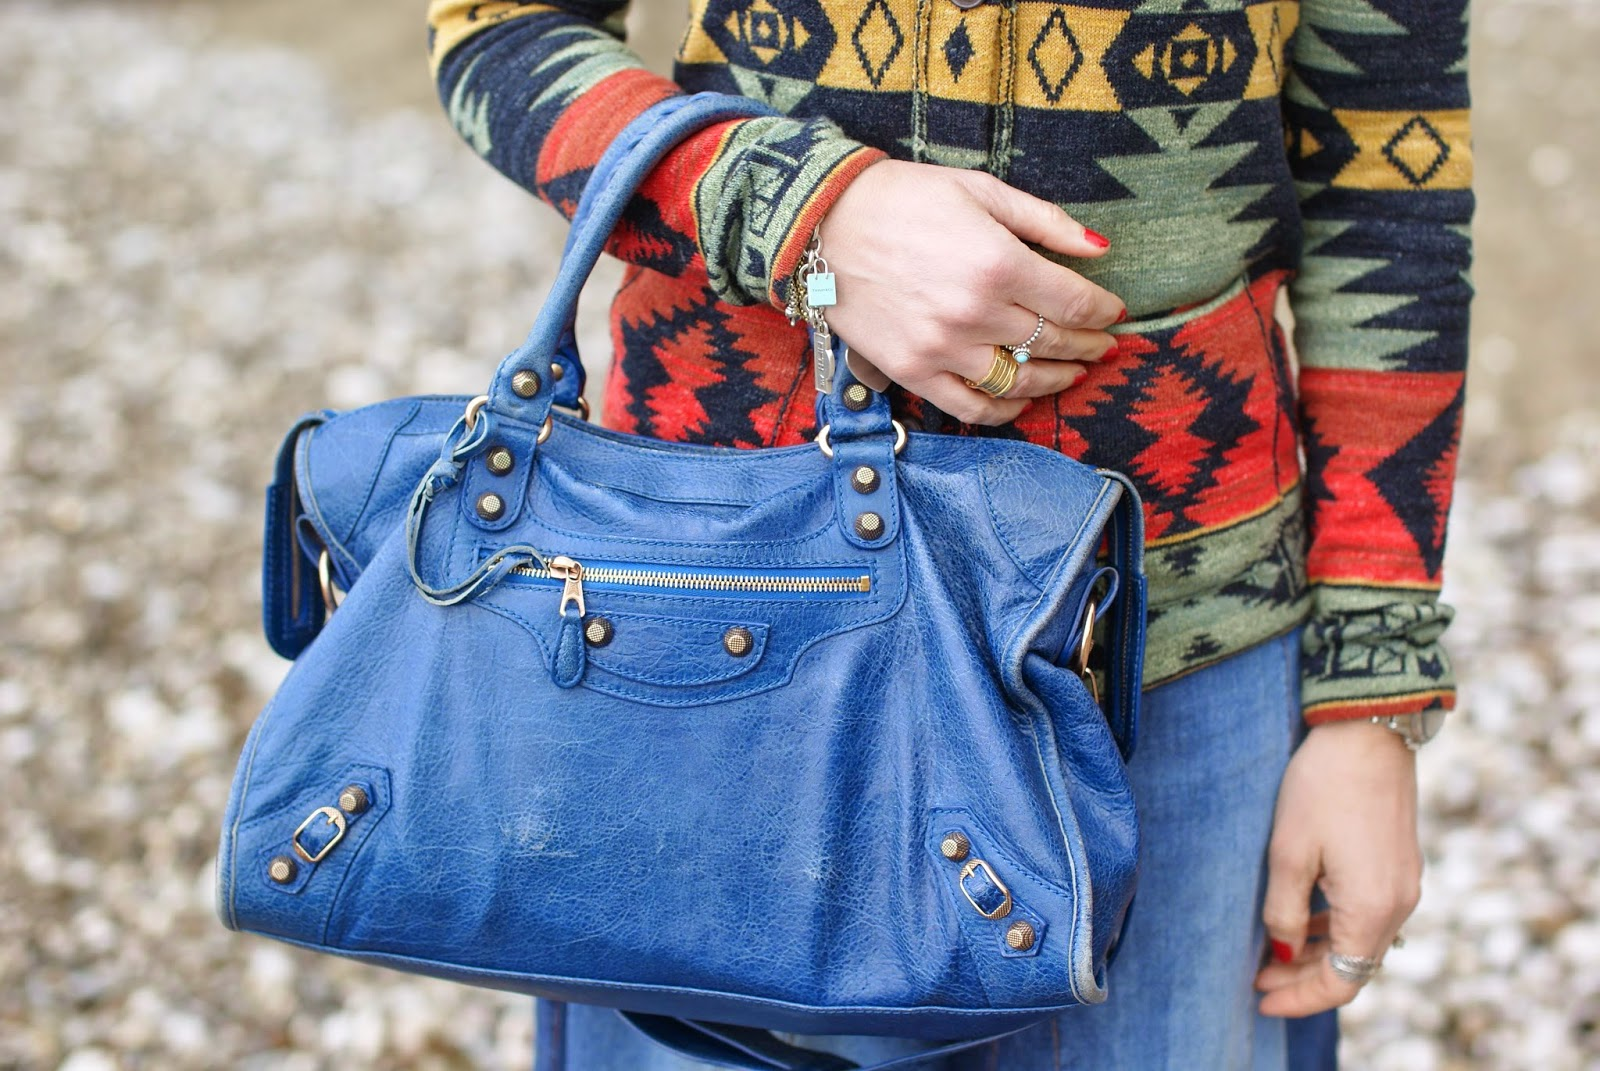 Balenciaga City bag, Balenciaga cobalt blue bag, Fashion and Cookies, fashion blogger